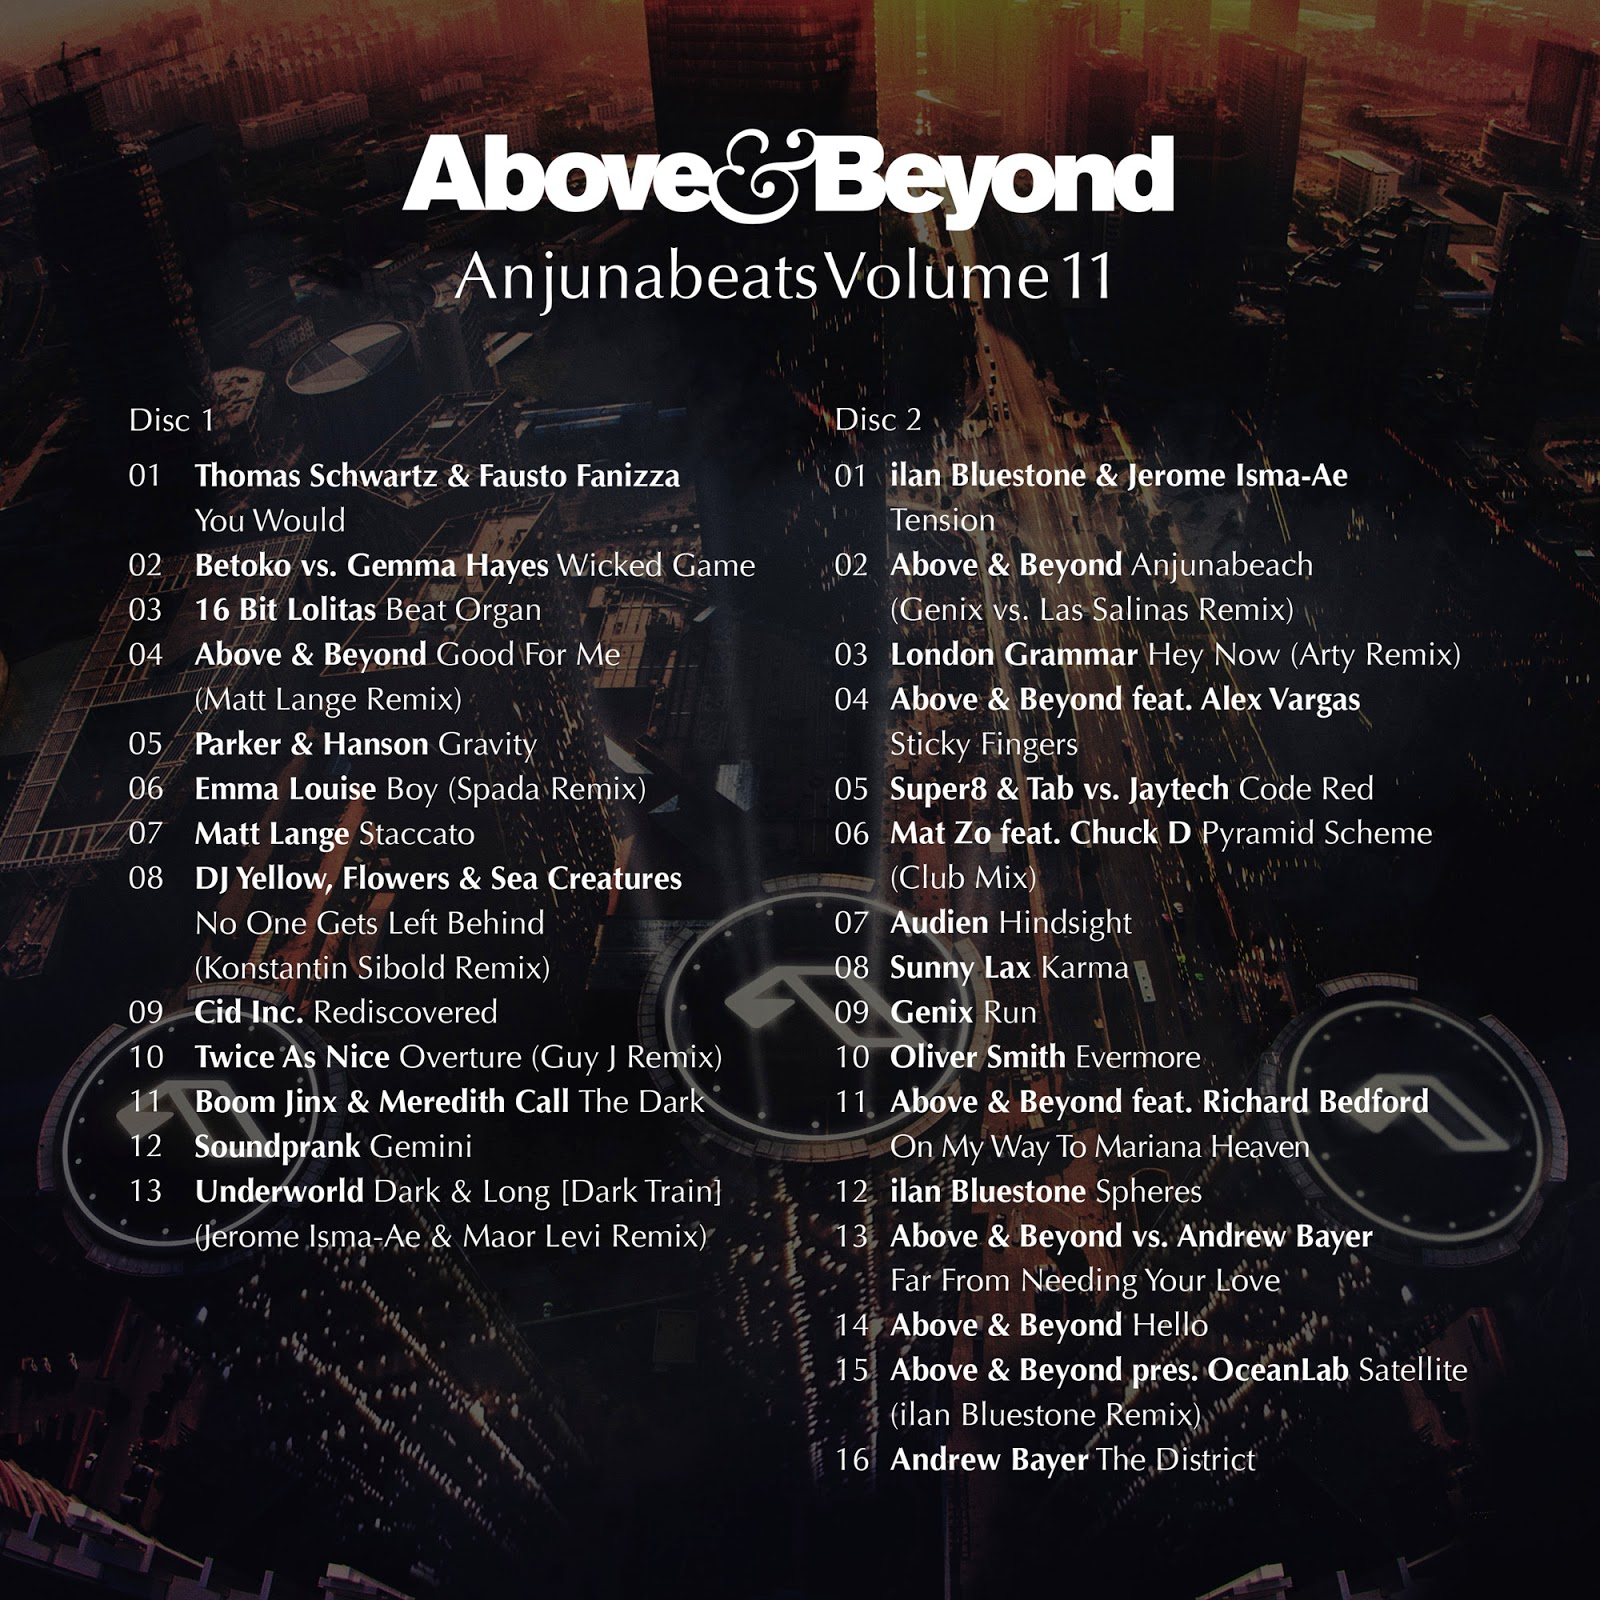 Above & Beyond announce Anjunabeats Volume 11 Tracklist and premiere Trailer